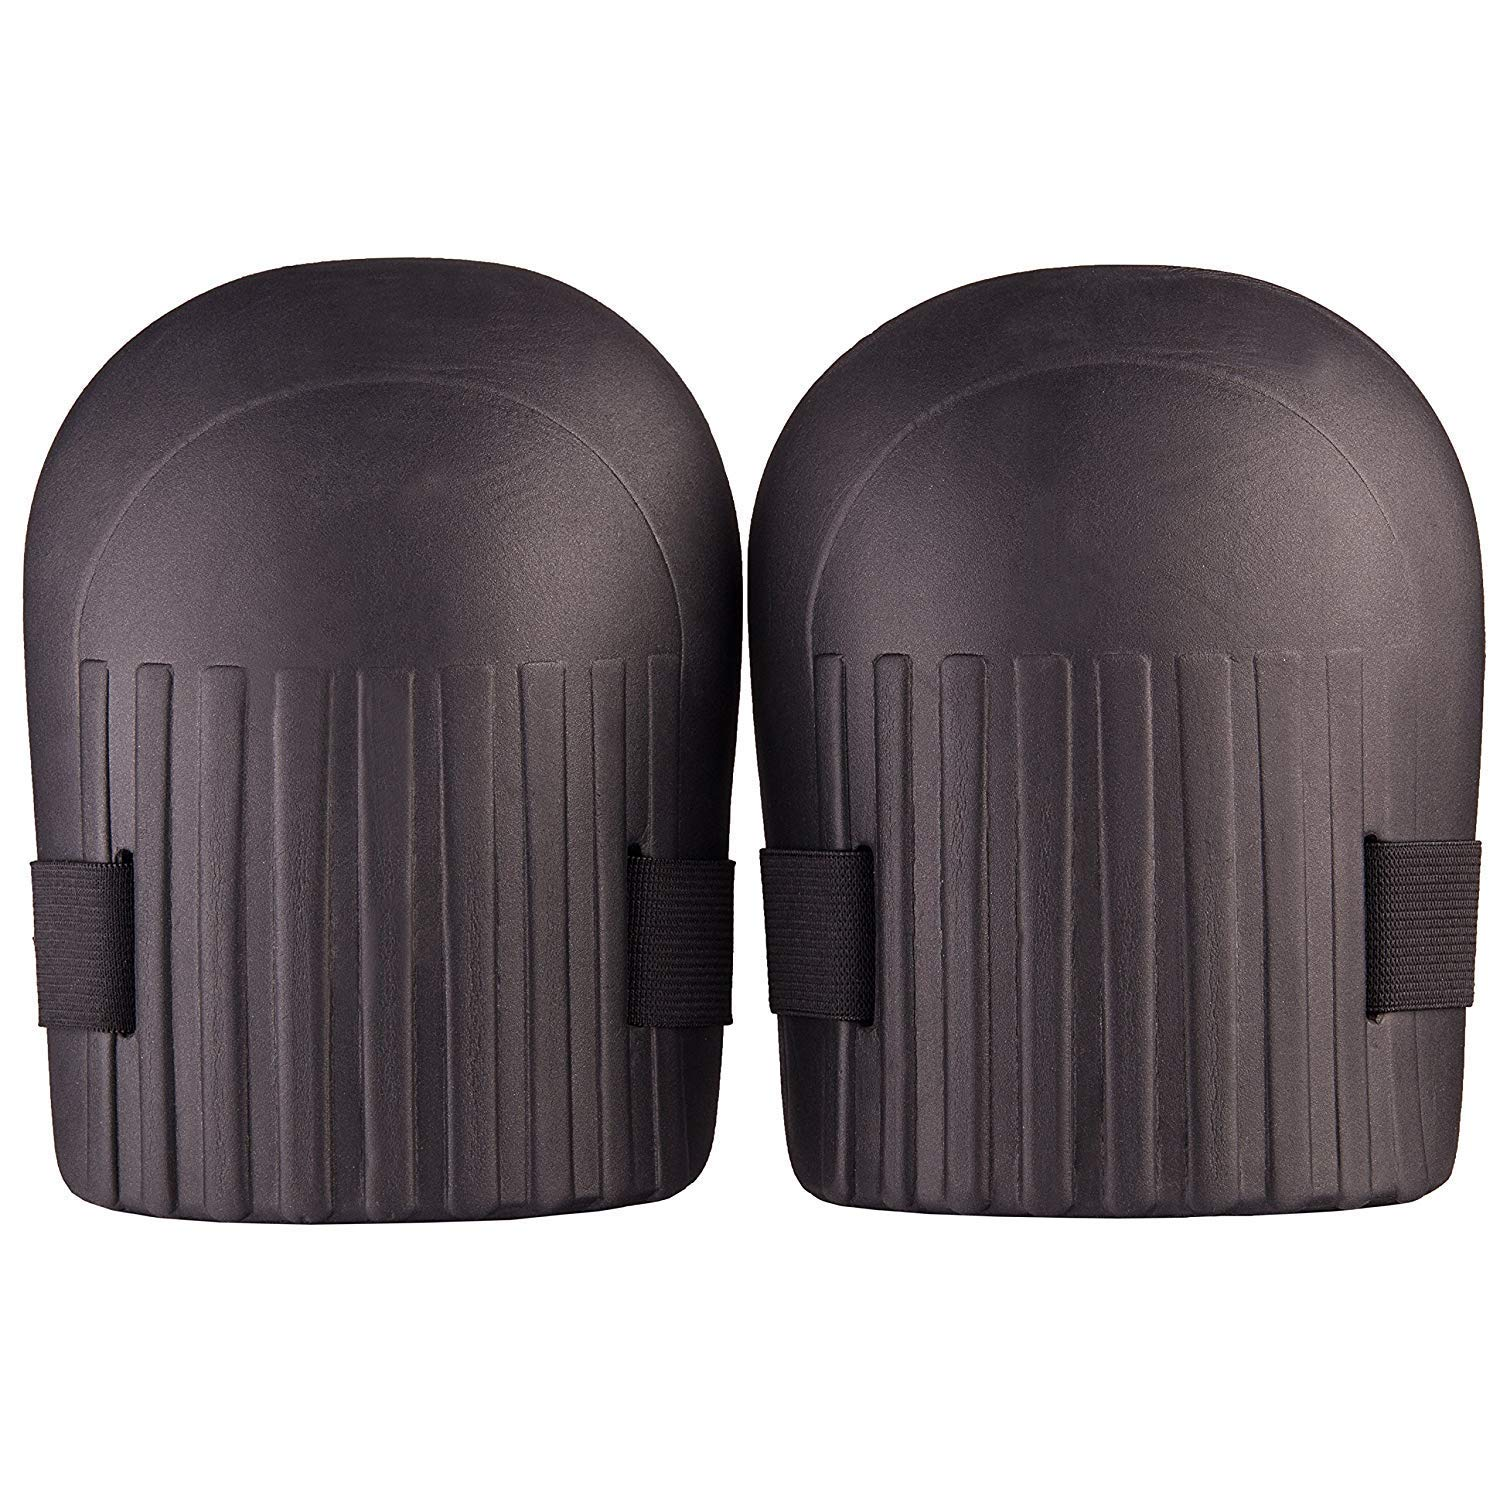 Lightweight Home & Gardening Knee Pads with Waterproof EVA Foam Cushion, Soft Inner Liner, and Easy Fit with Adjustable Straps